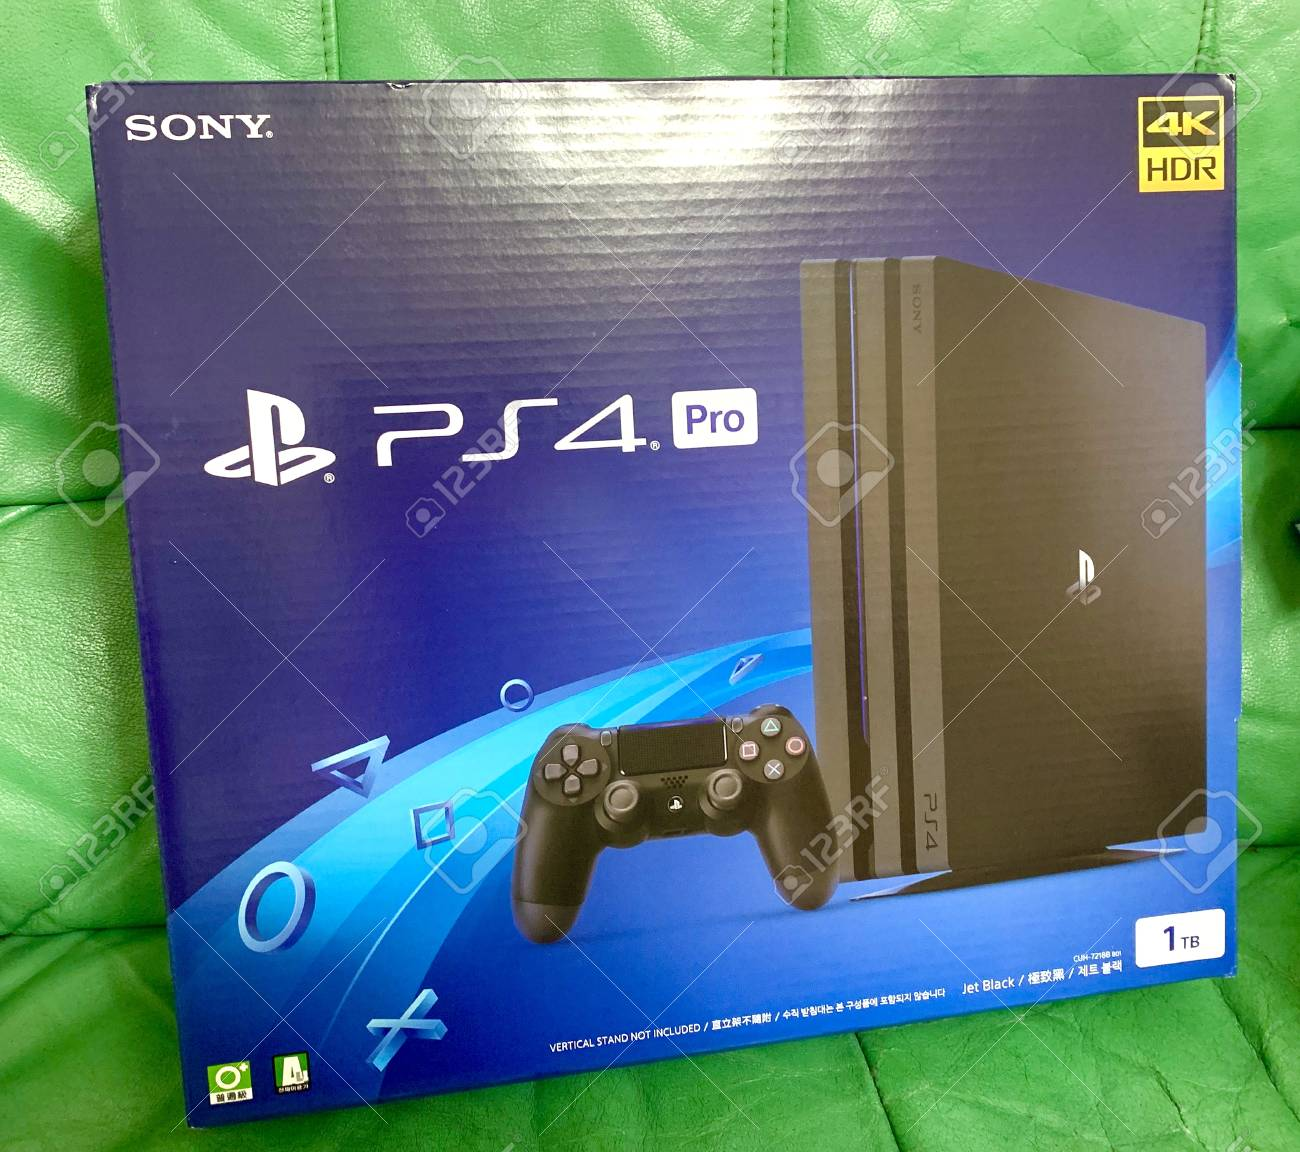 Sony Playstation 4 Pro 4k Hdr Stock Photo Picture And Royalty Free Image Image 121149651